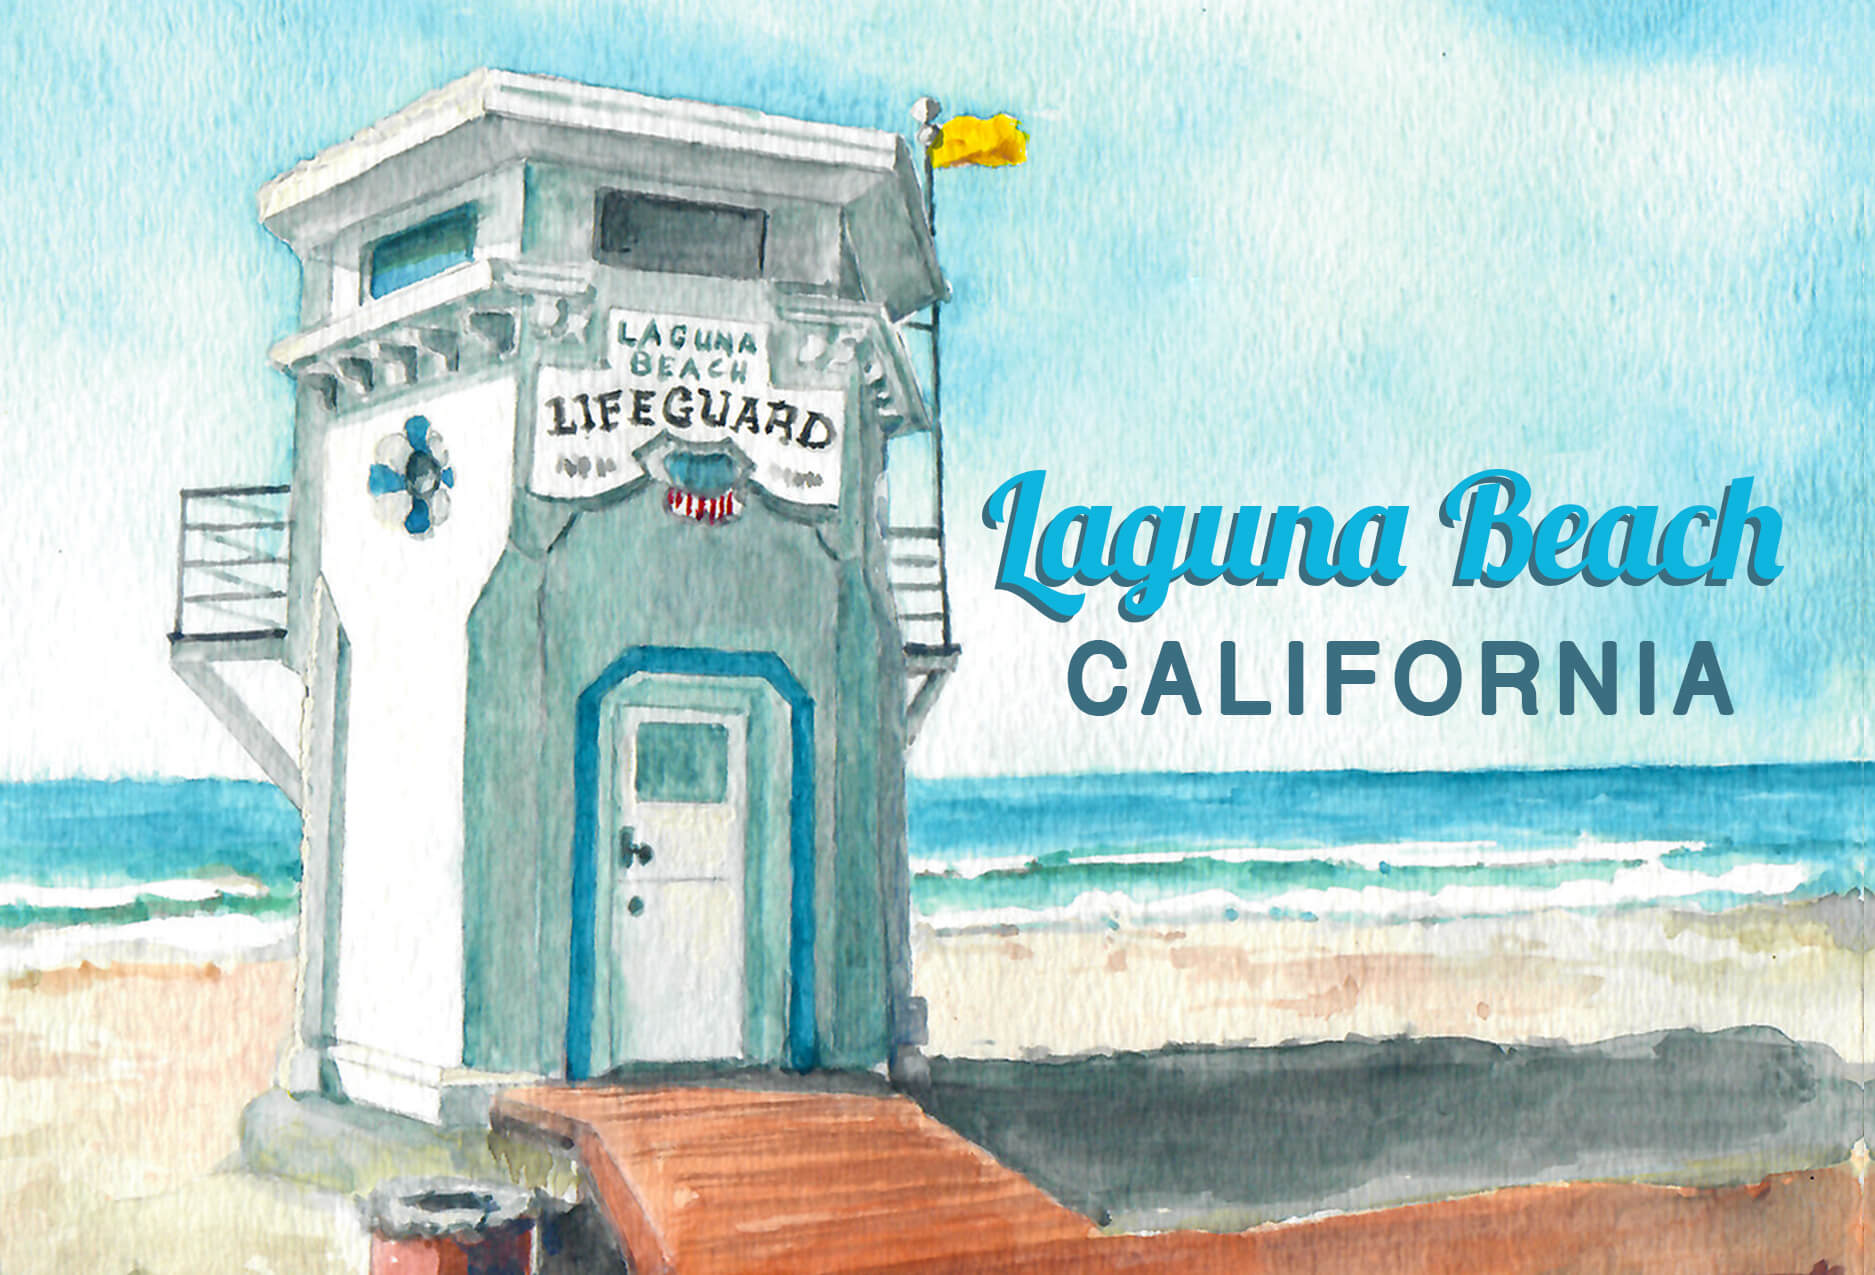 Puzzle showing the iconic Laguna Beach Life Guard Tower and pacific ocean